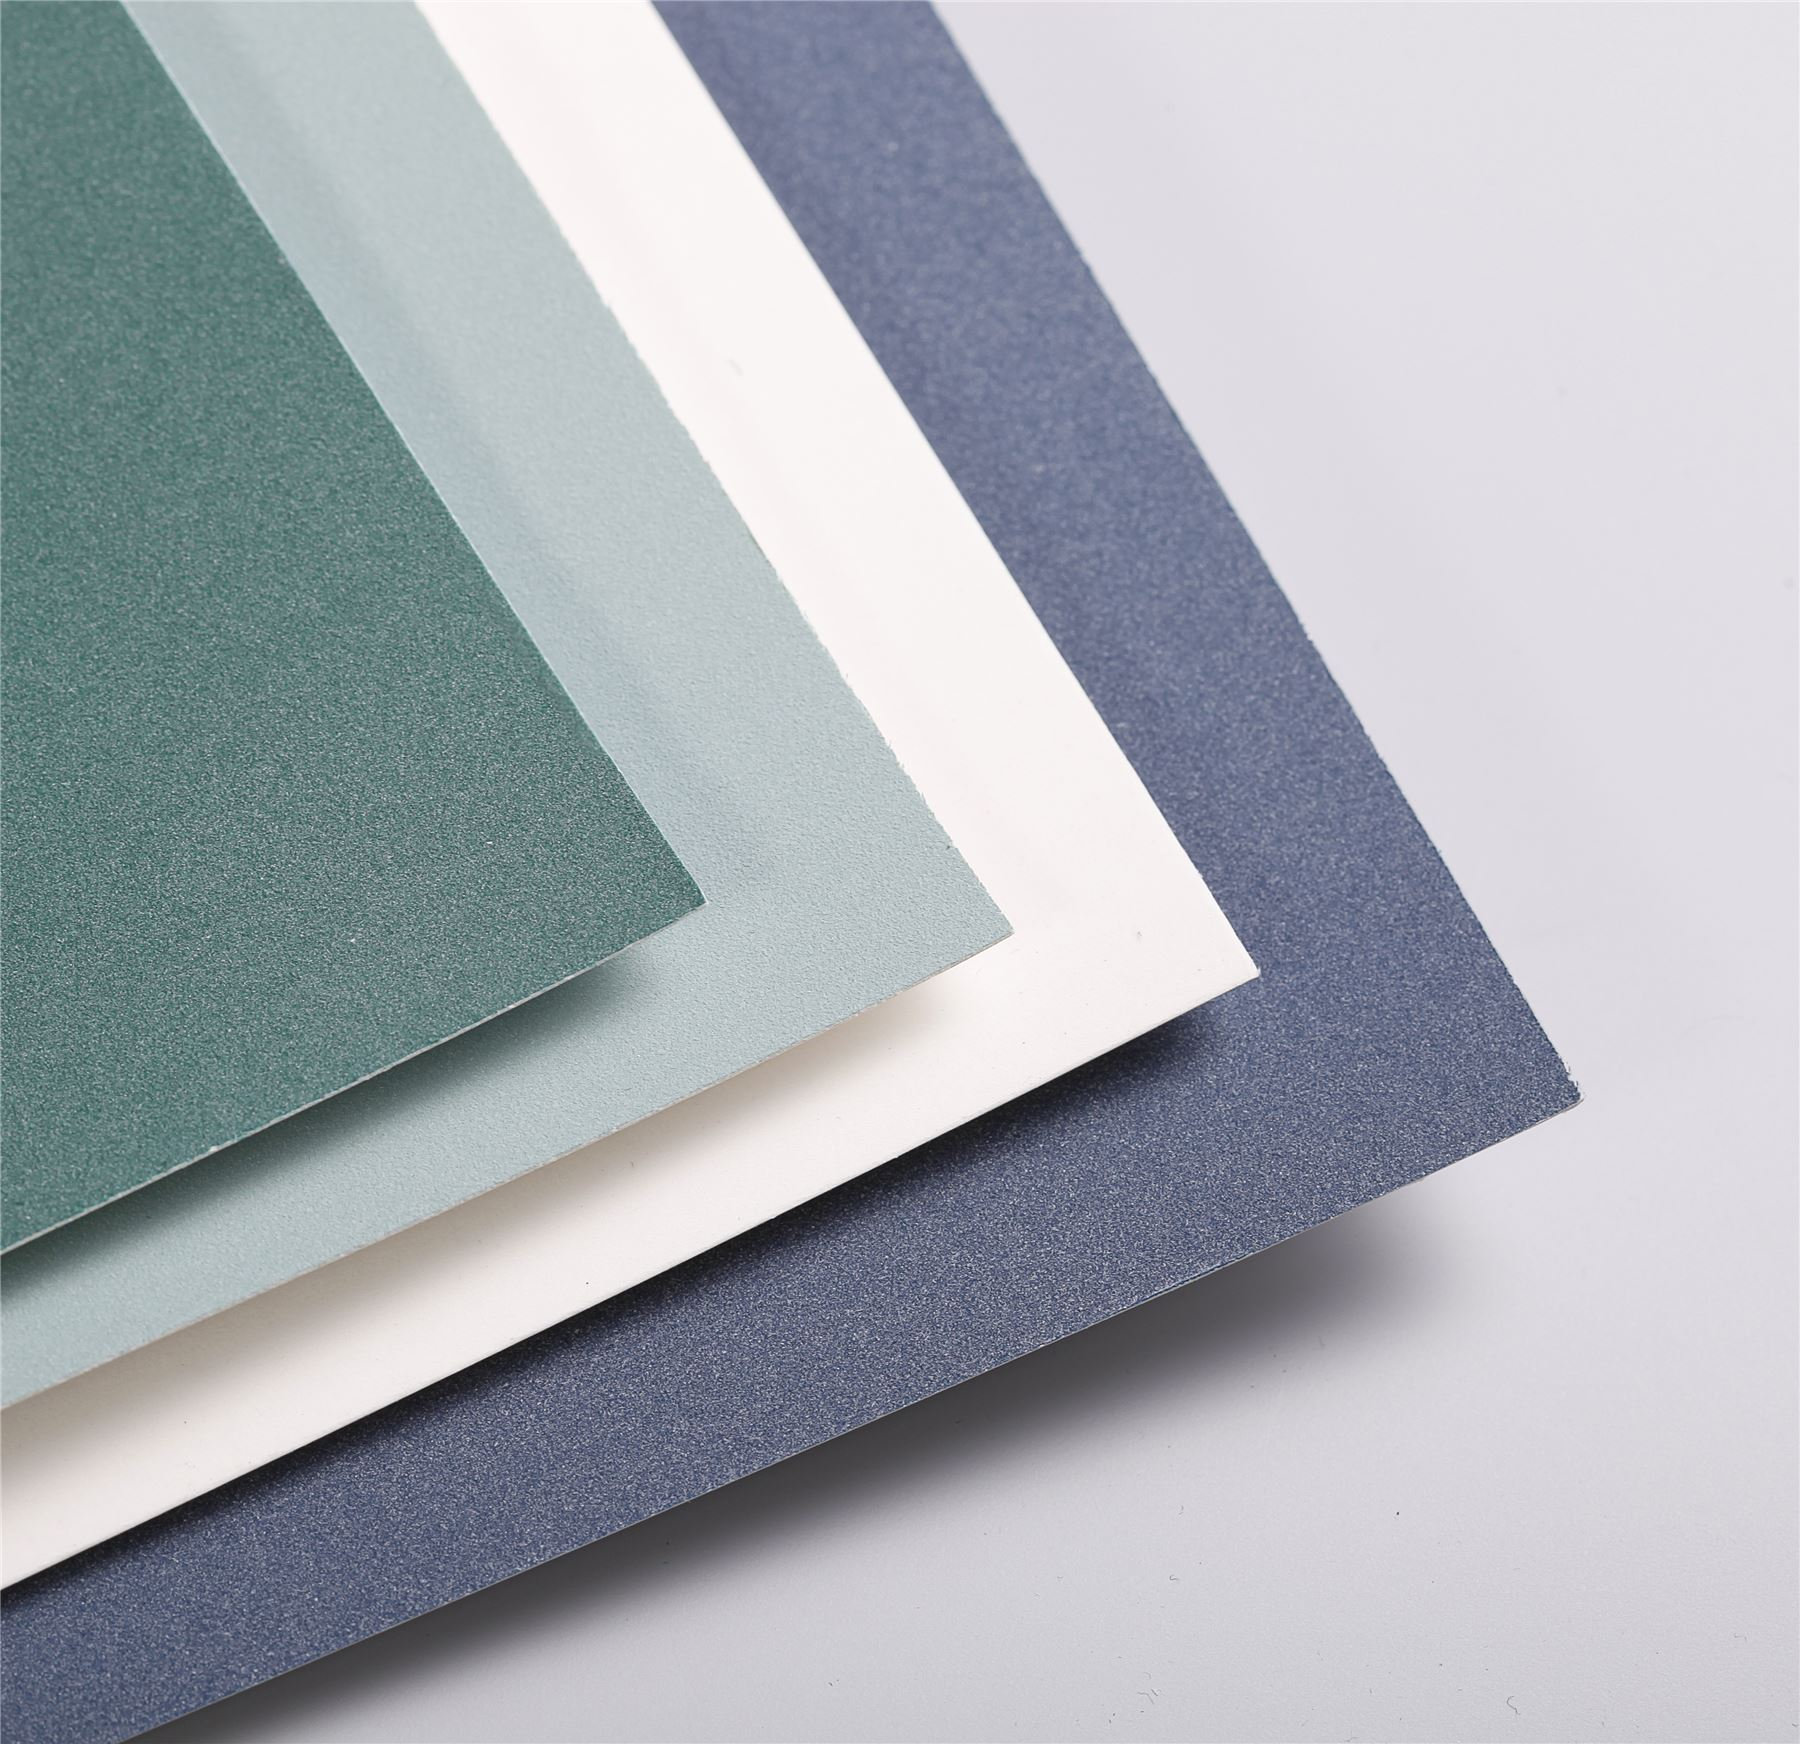 Clairefontaine-PastelMat-Pads-6-pad-choices-in-assorted-colours-amp-sizes thumbnail 34